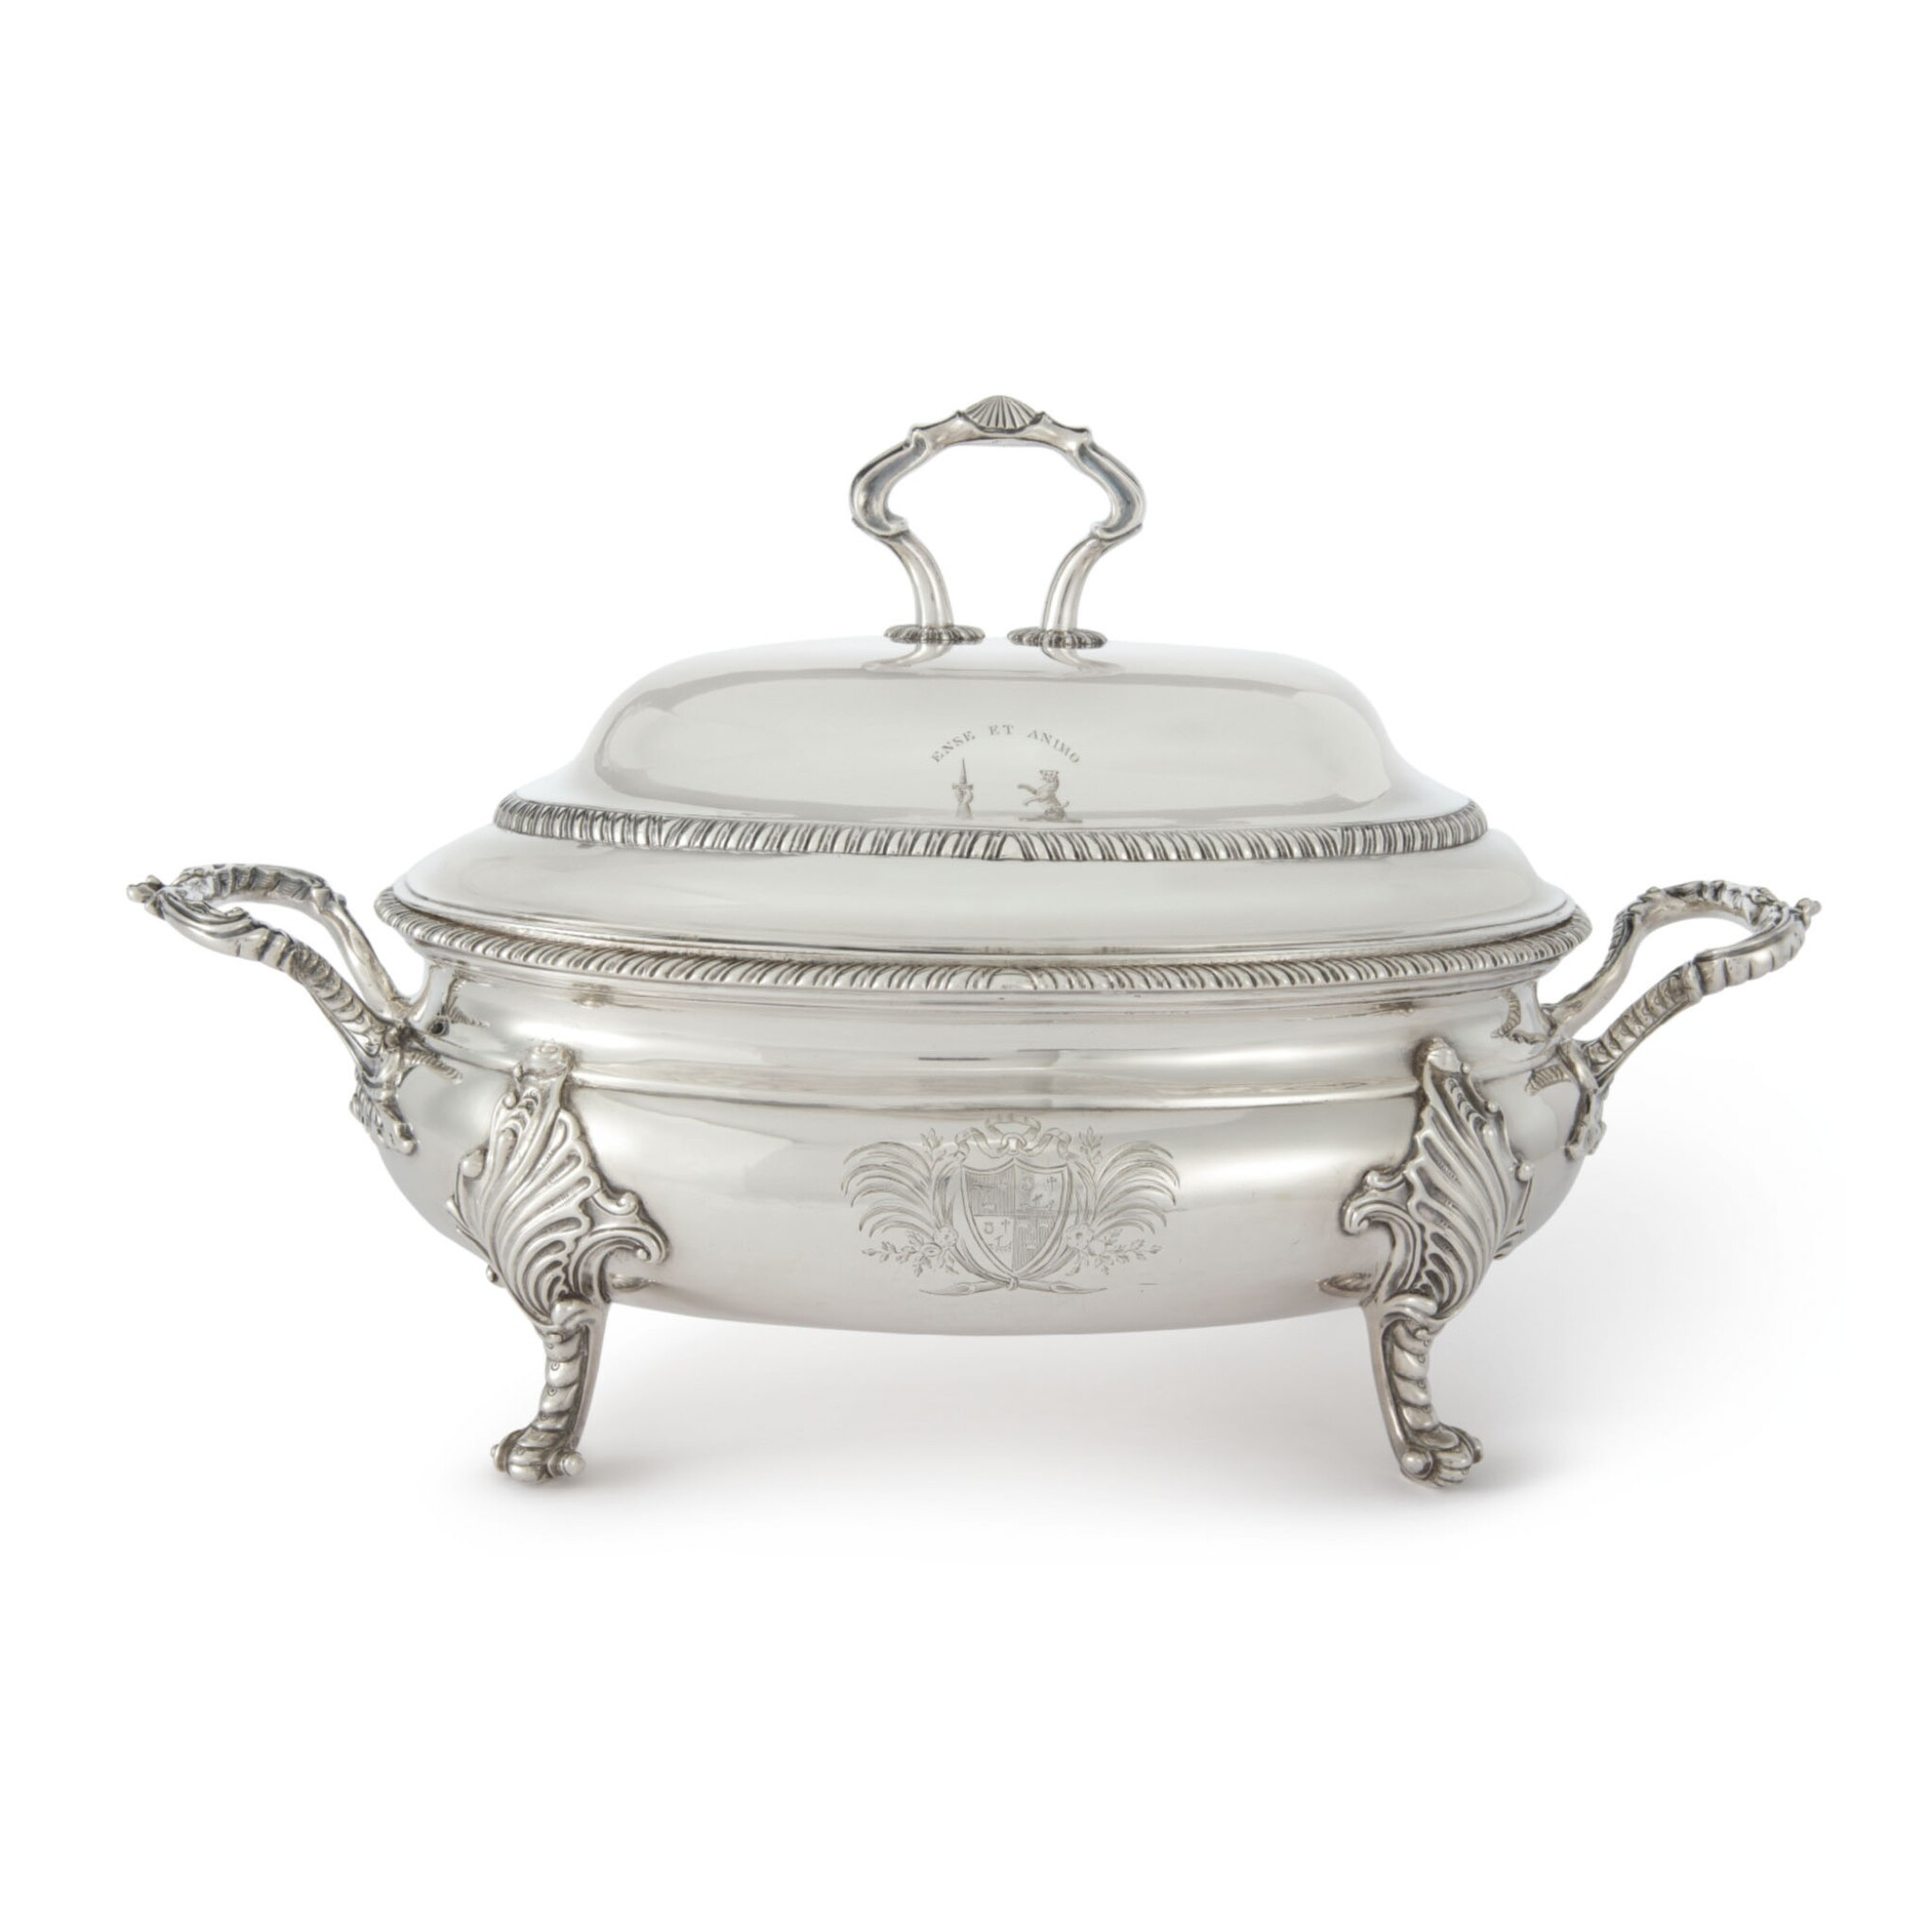 View full screen - View 1 of Lot 767. A SCOTTISH SILVER SOUP TUREEN AND COVER, GEORGE MCHATTIE, EDINBURGH, 1812.